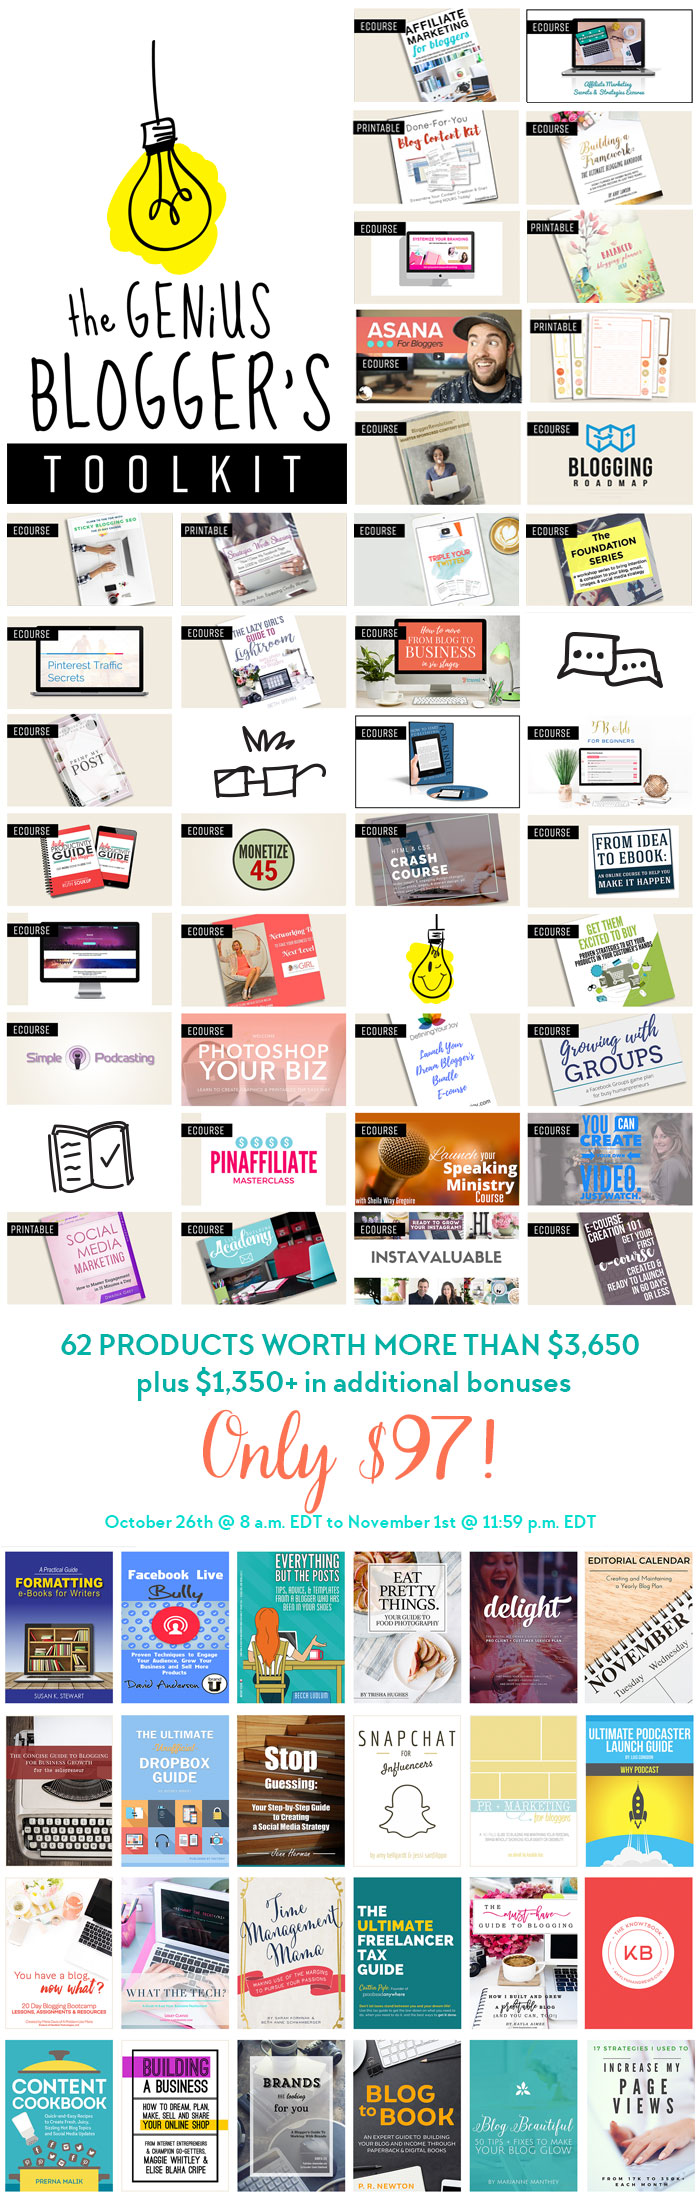 The Genius Blogger's Toolkit is a bundle of 24 ebooks, 33 ecourses + audio and 5 printable packs (and 17 bonuses) that's only available for ONE WEEK: Oct 26 - Nov 1, 2016. The best part is that the entire bundle (worth well over $5000) is only $97!! Yep, that's not a typo! Click here right now to get in on it before it's gone forever.